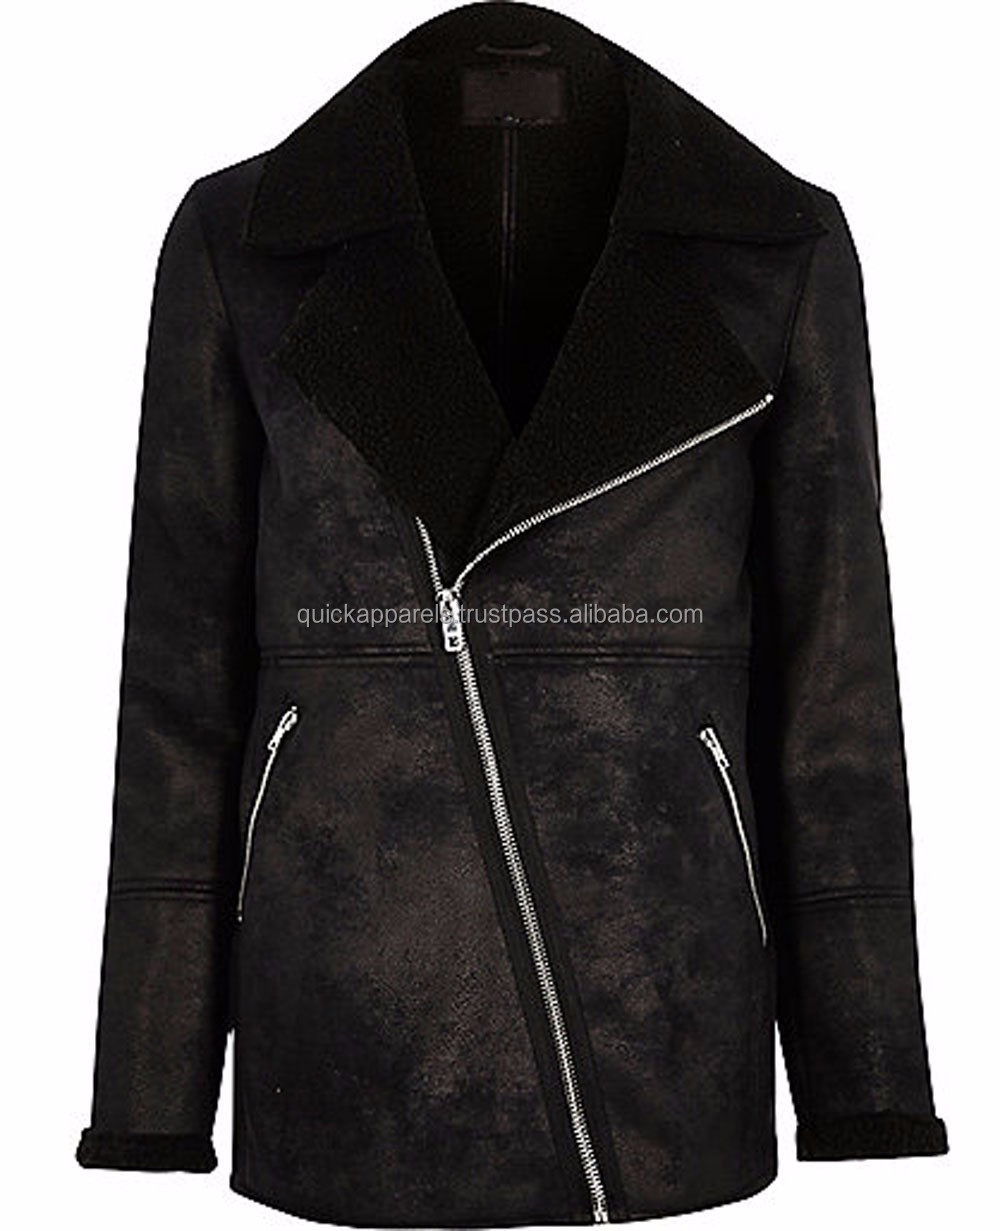 Fashion leather bomber jacket for men custom made